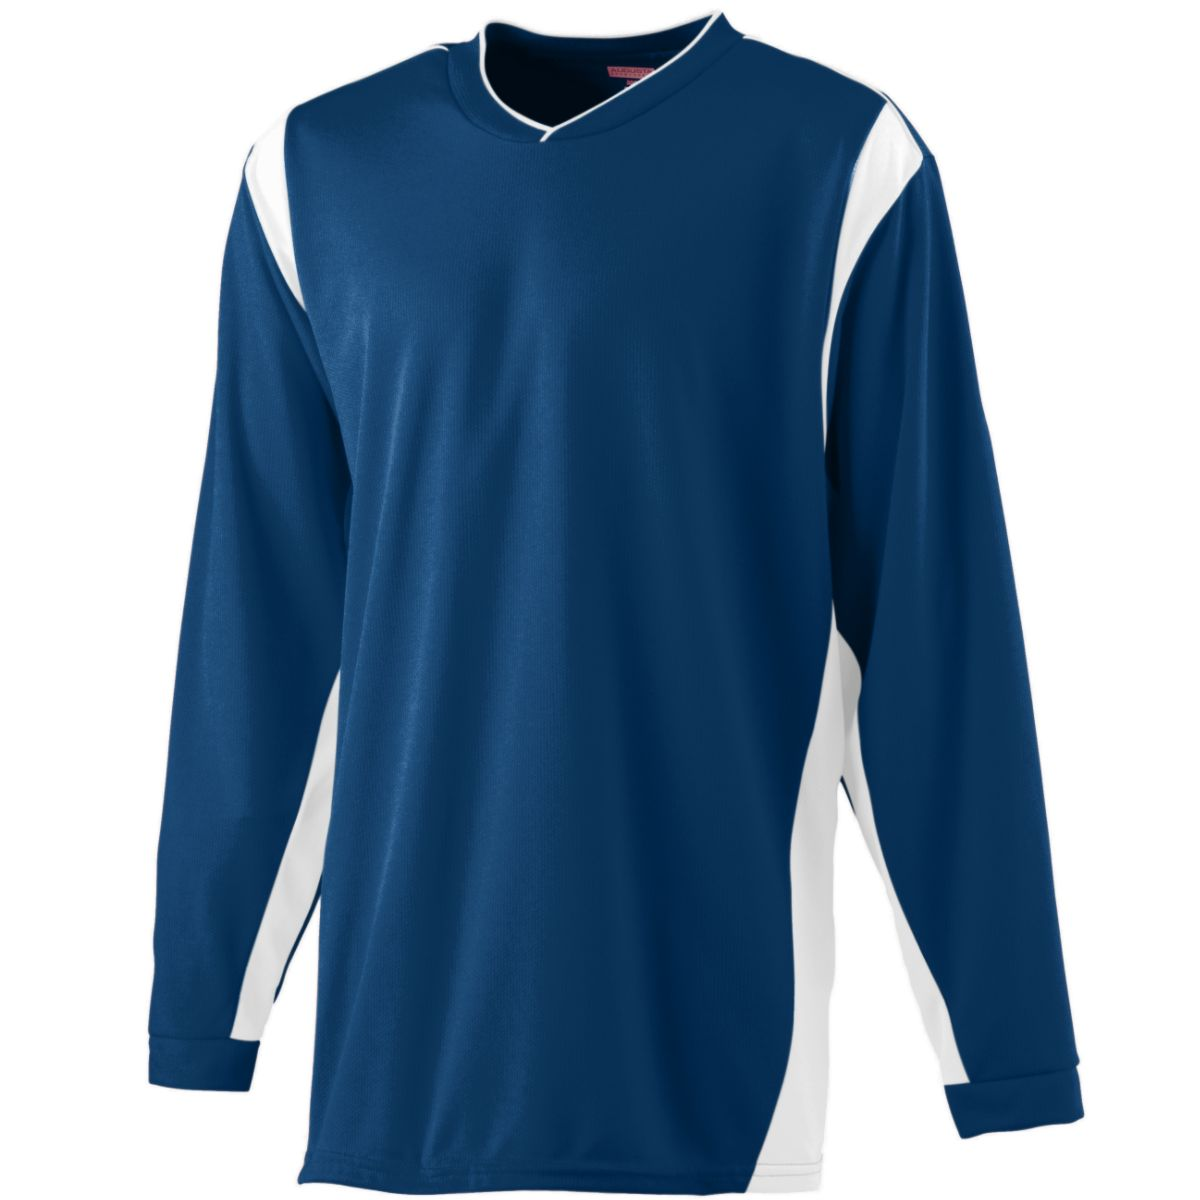 AS4600 WICKING Long Sleeve Warmup Training Shirt By Augusta Sportswear